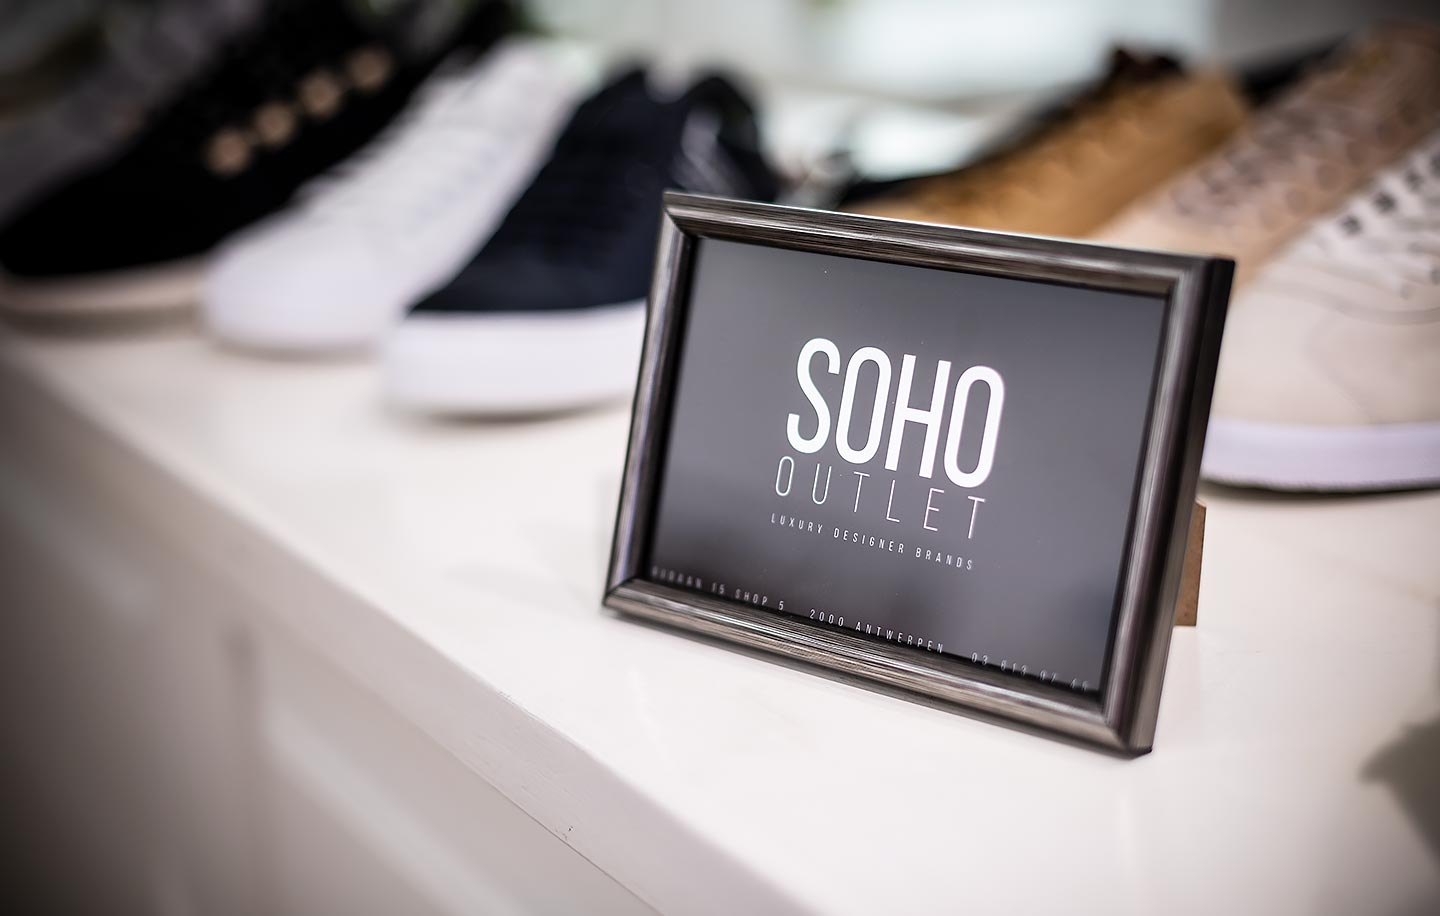 soho outlet